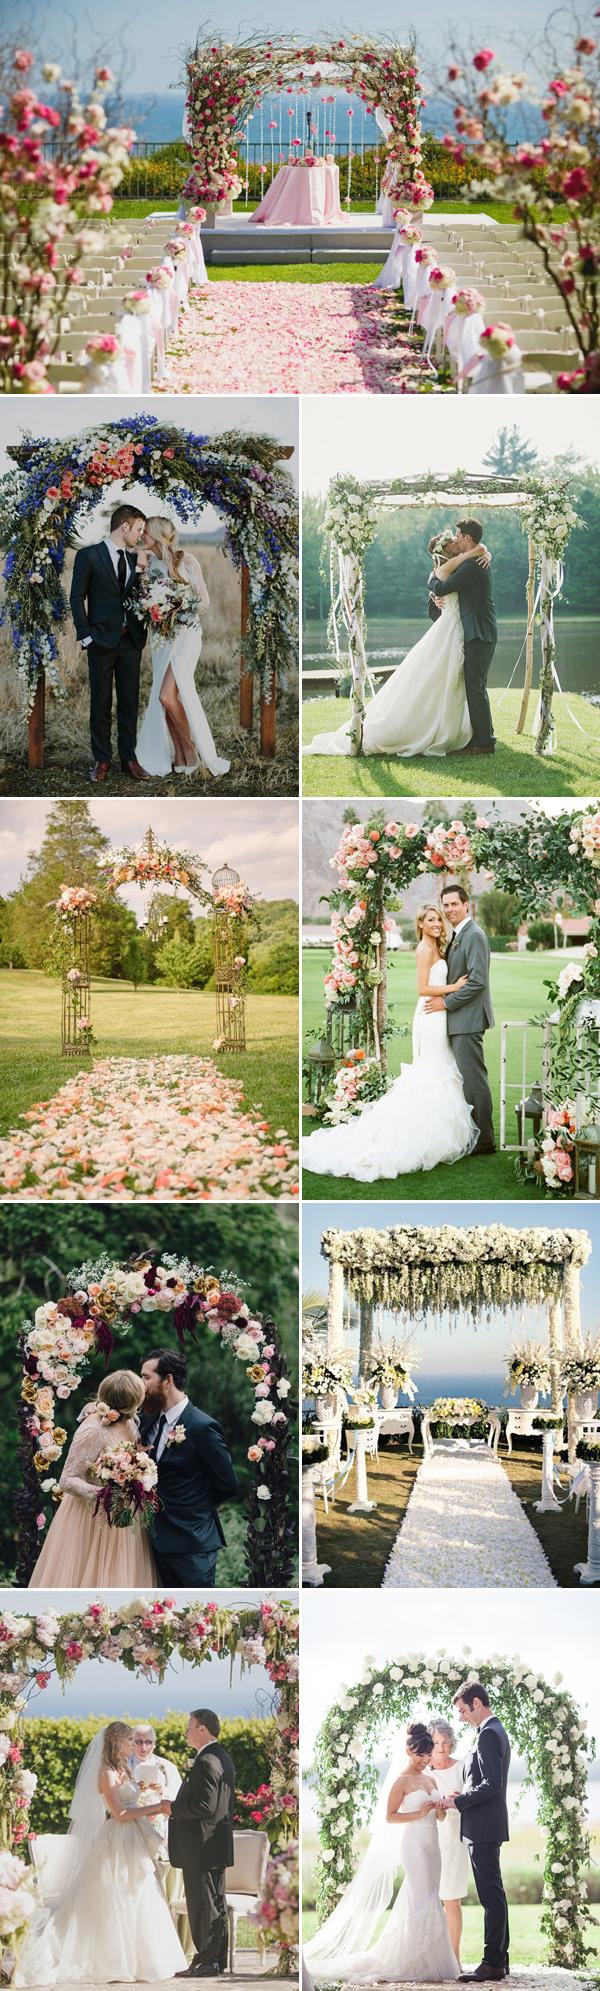 floral inspired for wedding arch